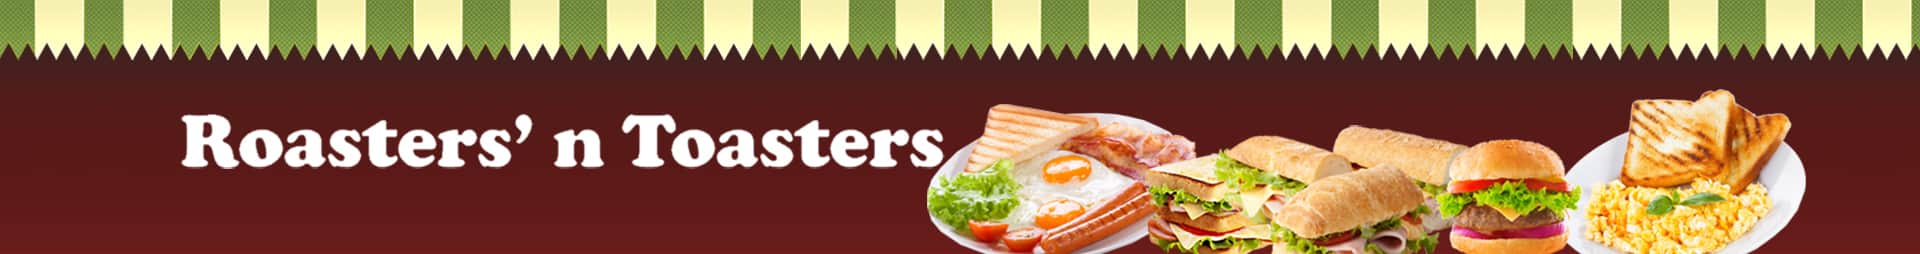 Banner. Roasters and Toasters.